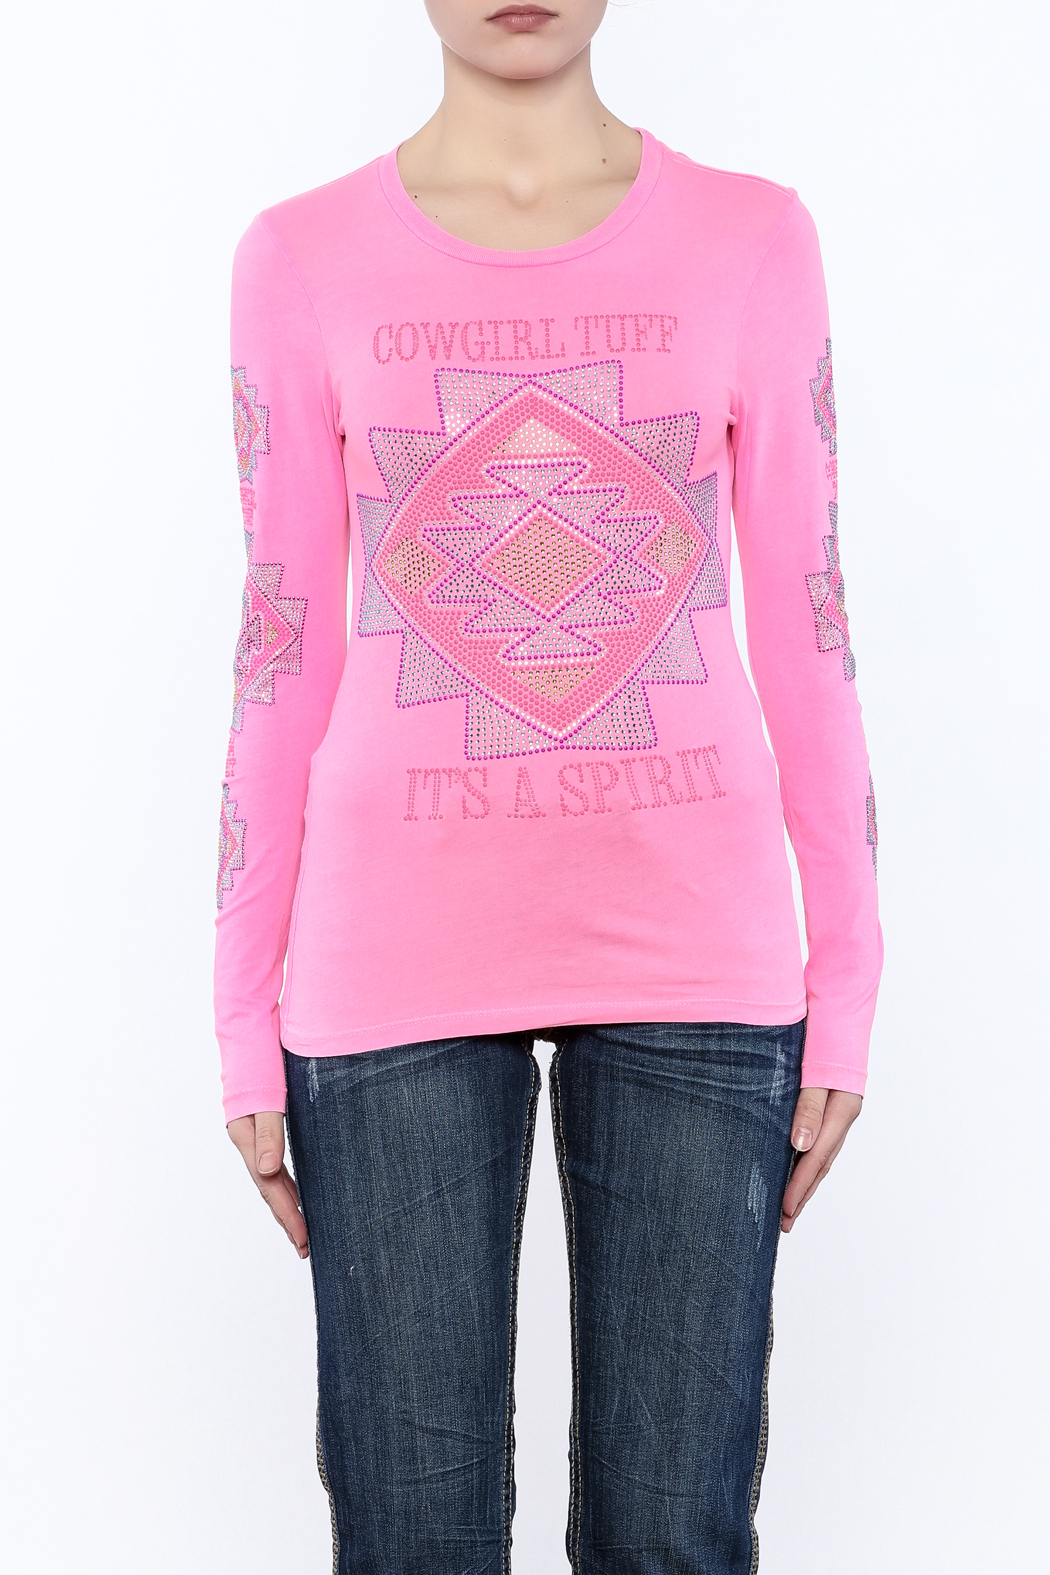 Cowgirl Tuff Junior's Pink Tee - Side Cropped Image